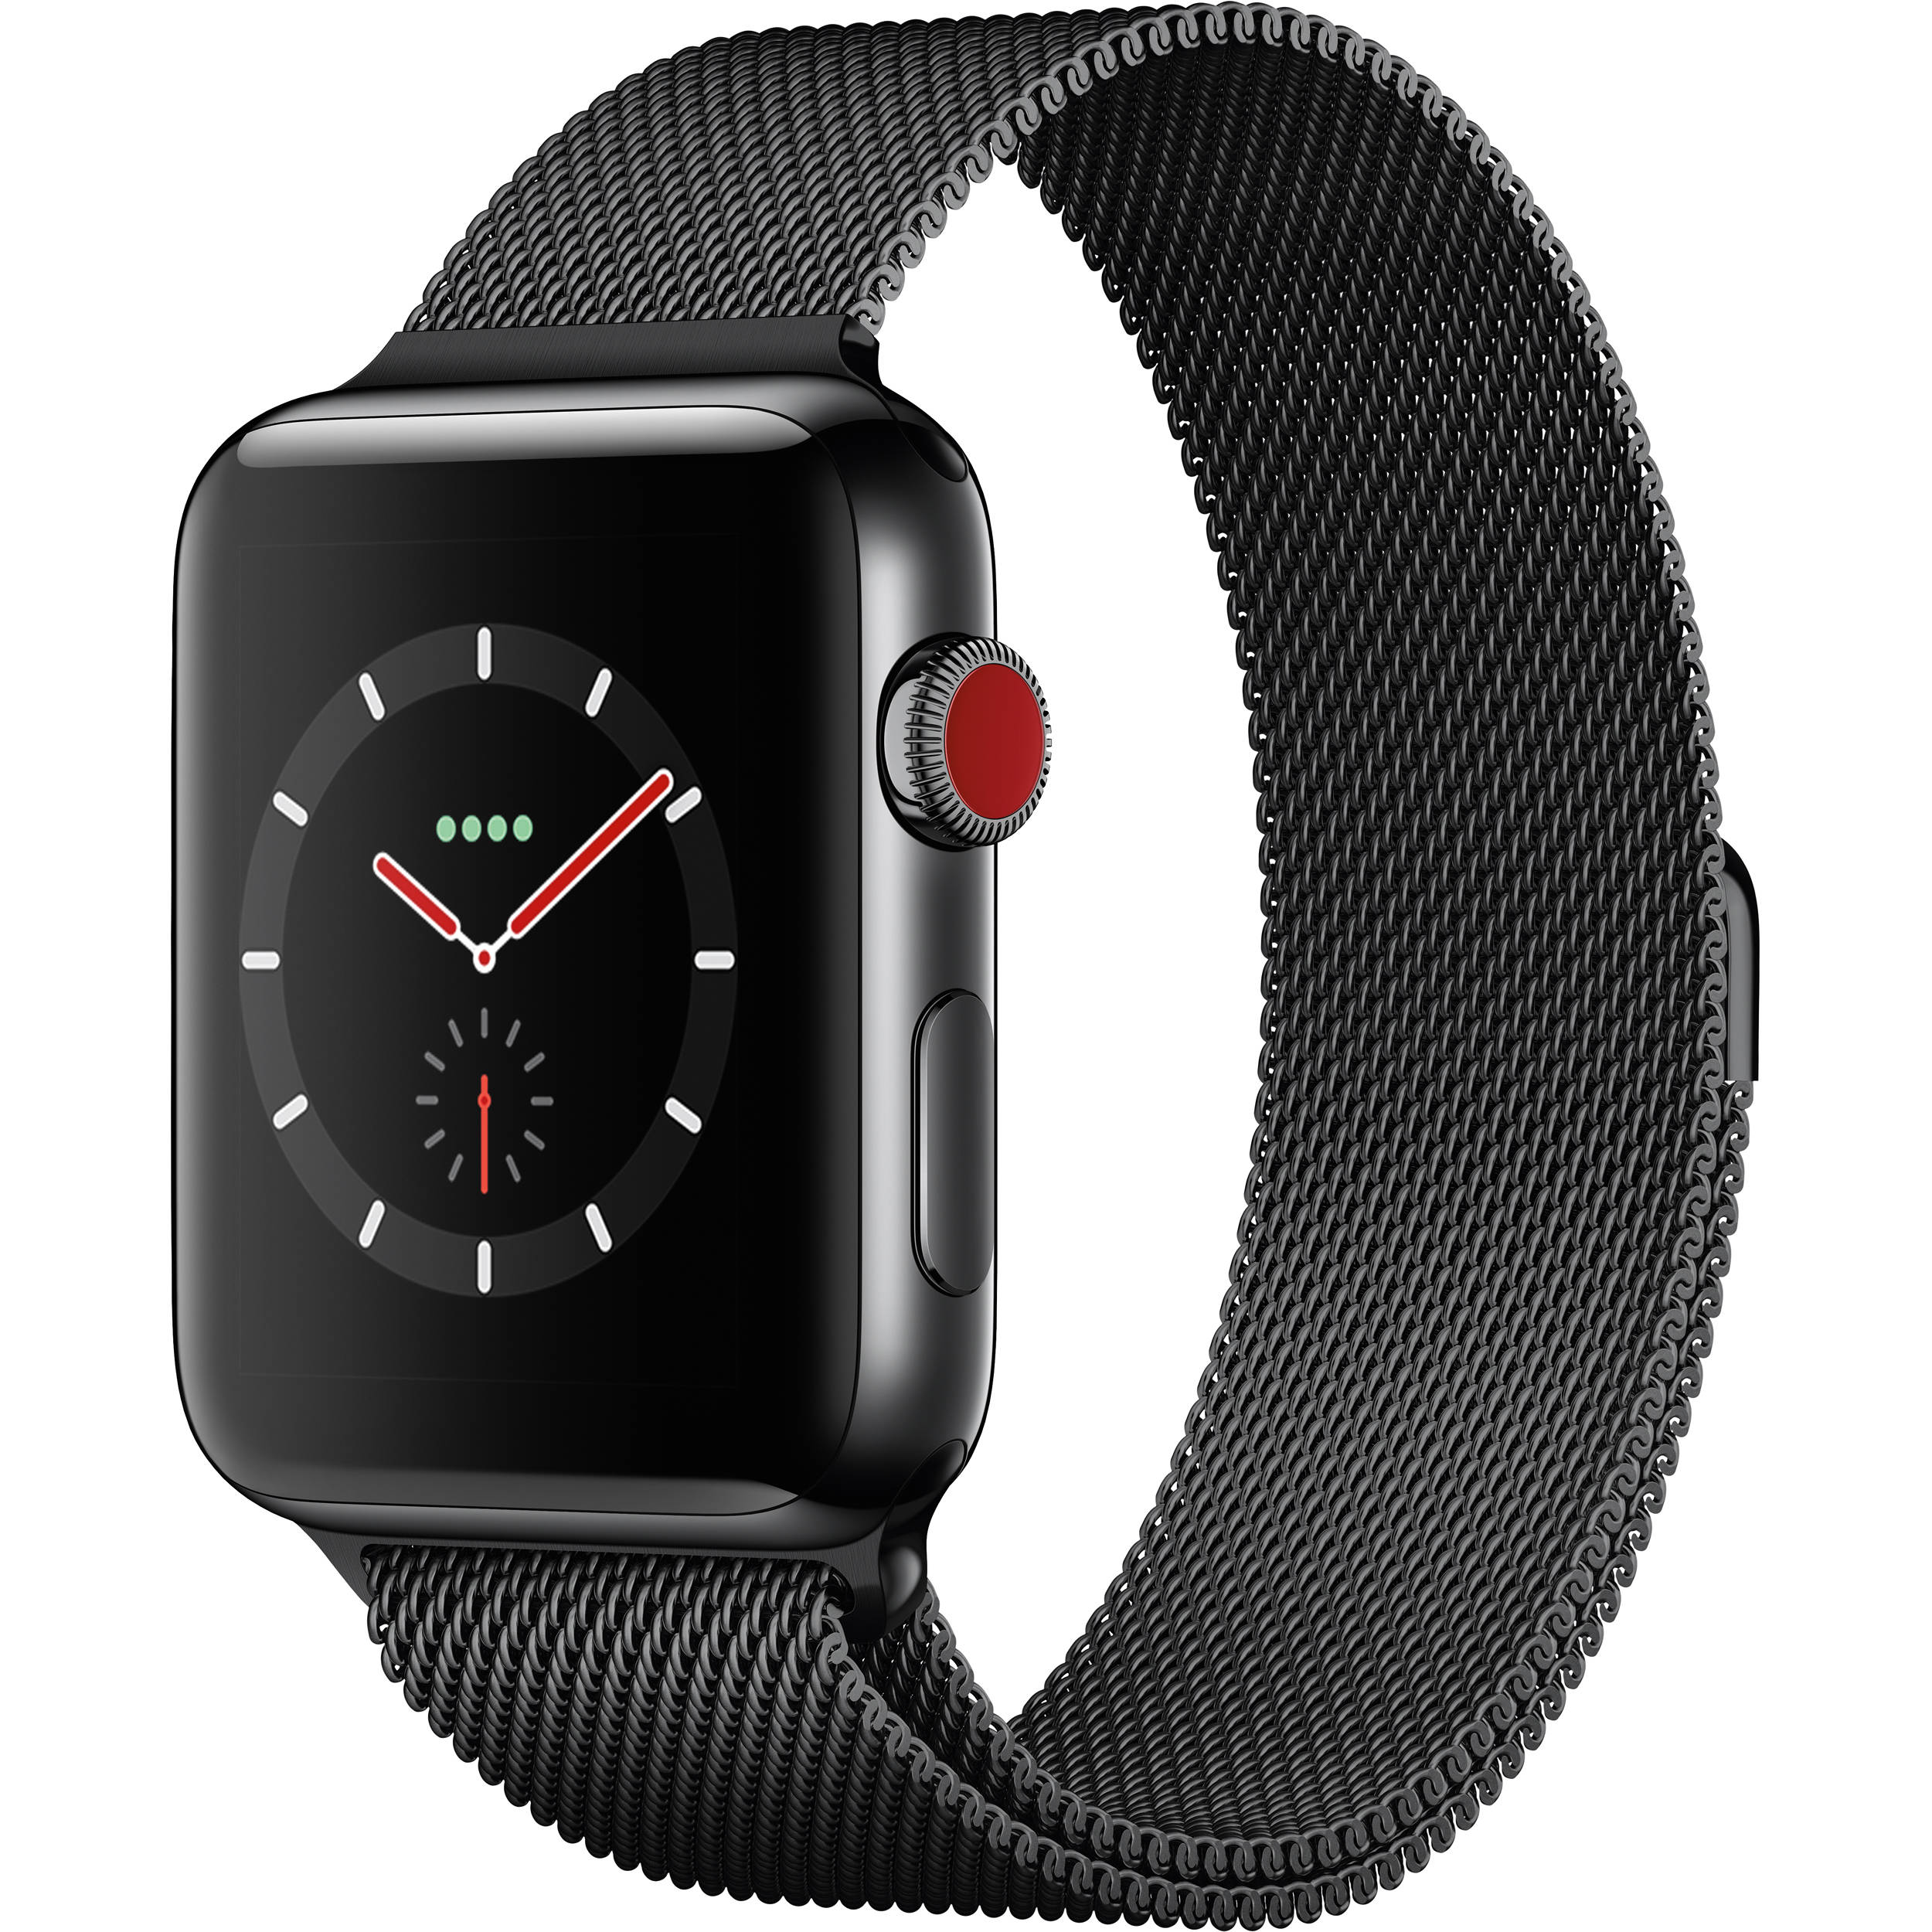 apple_mr1l2ll_a_watch_series_3_42mm_1362199.jpg